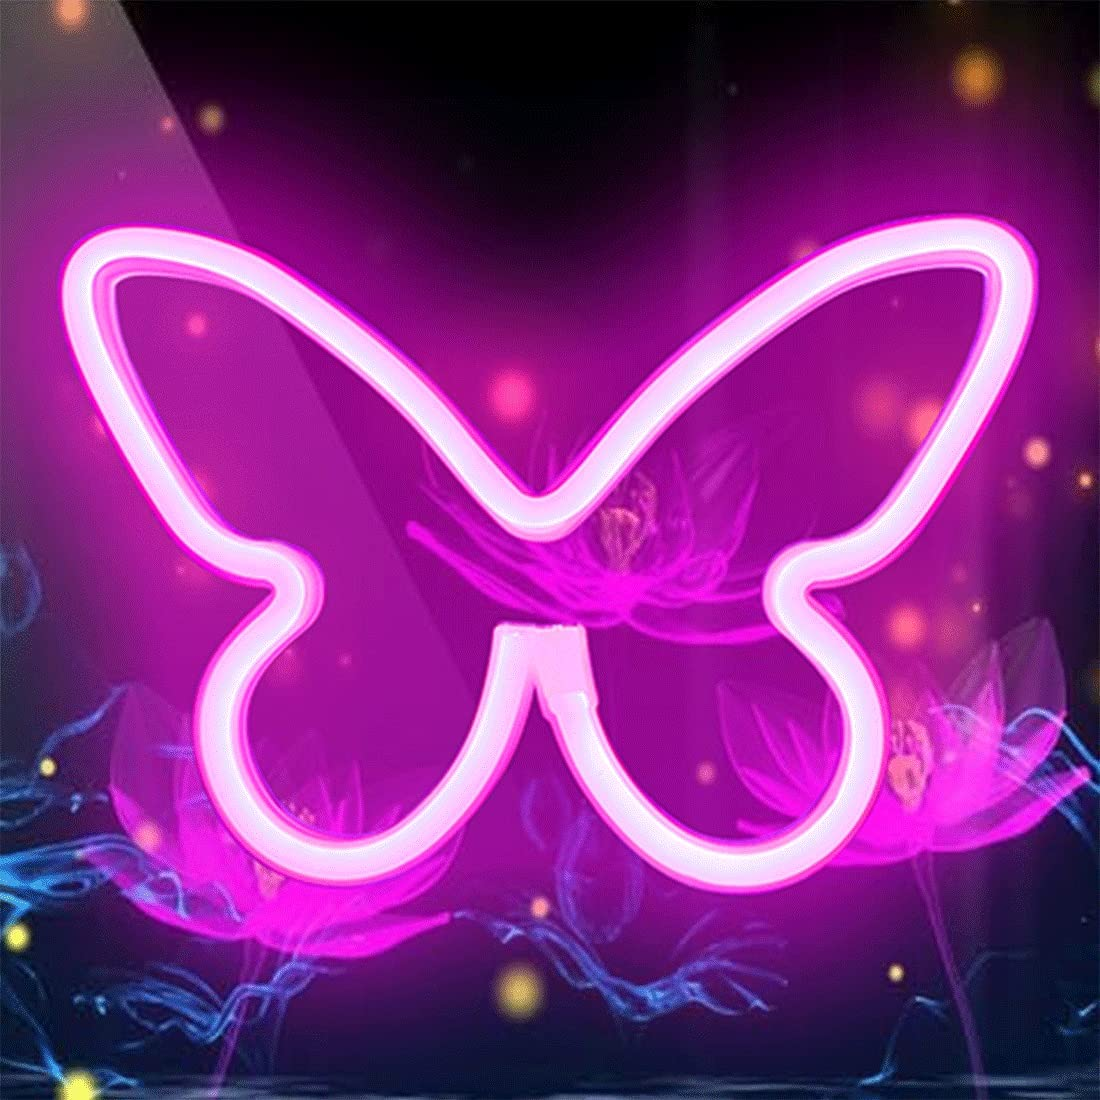 Malgero Butterfly Neon Signs Pink Lights for Wall Hanging, USB or Battery Night Light for Dorm Living Rome Home Bedroom,Cute Decor for Christmas Birthday Party Kawaii Gift for Girls,Kids,Mom